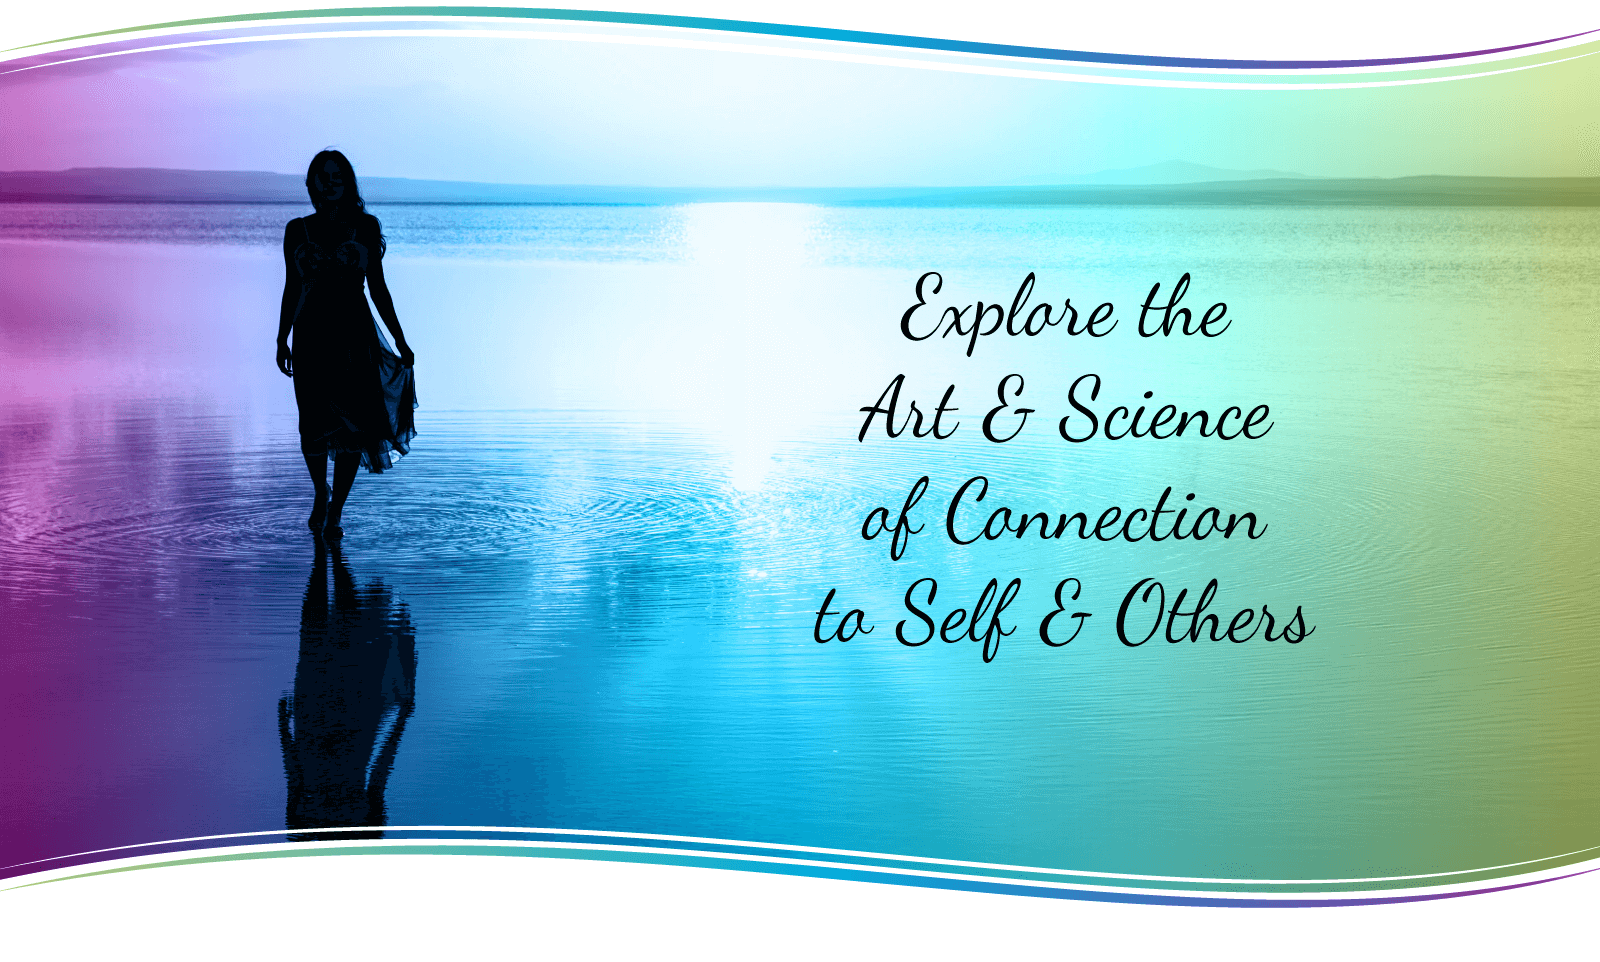 Explore-The-Art-and-Science-of-Connection-to-Self-and-Others